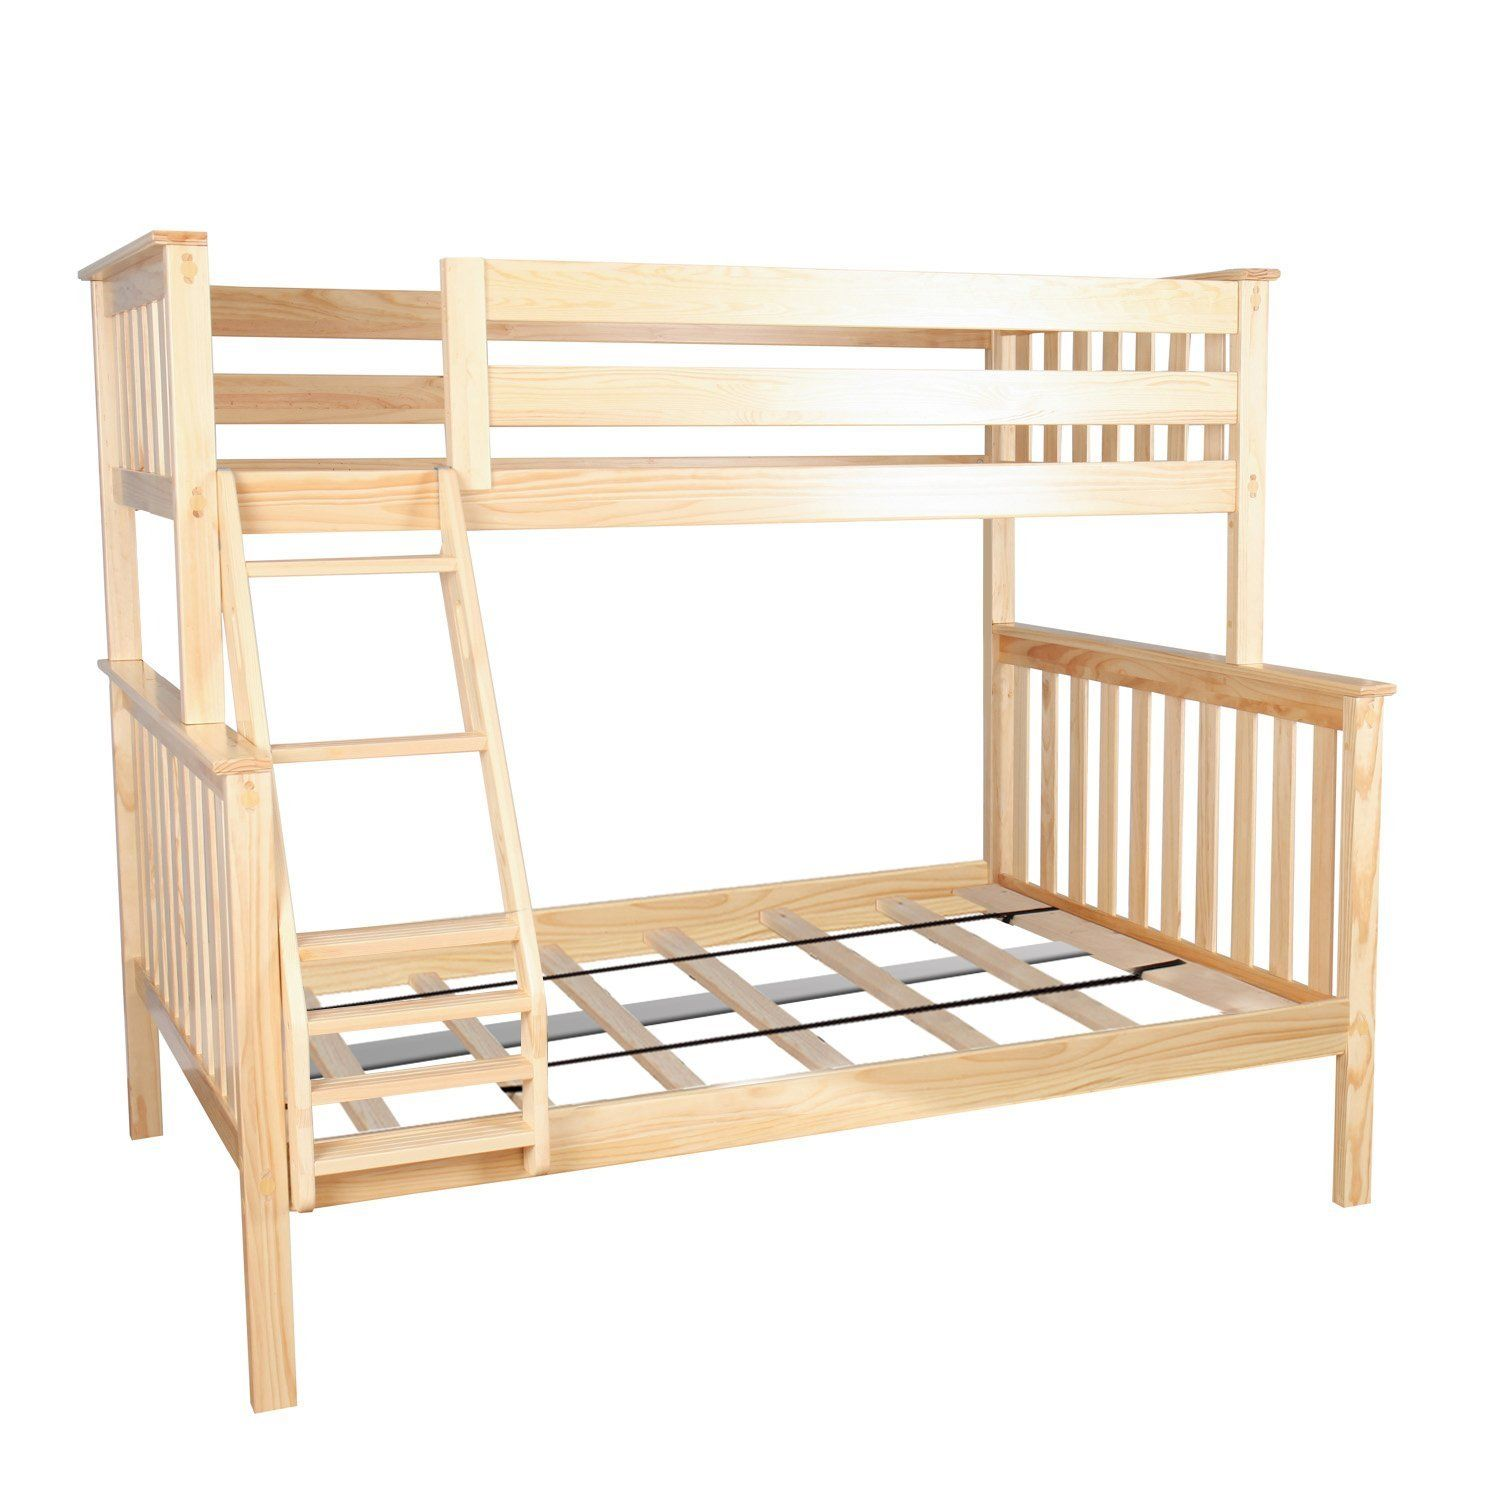 Max And Lily Solid Wood Twin Over Full Bunk Bed For Kids